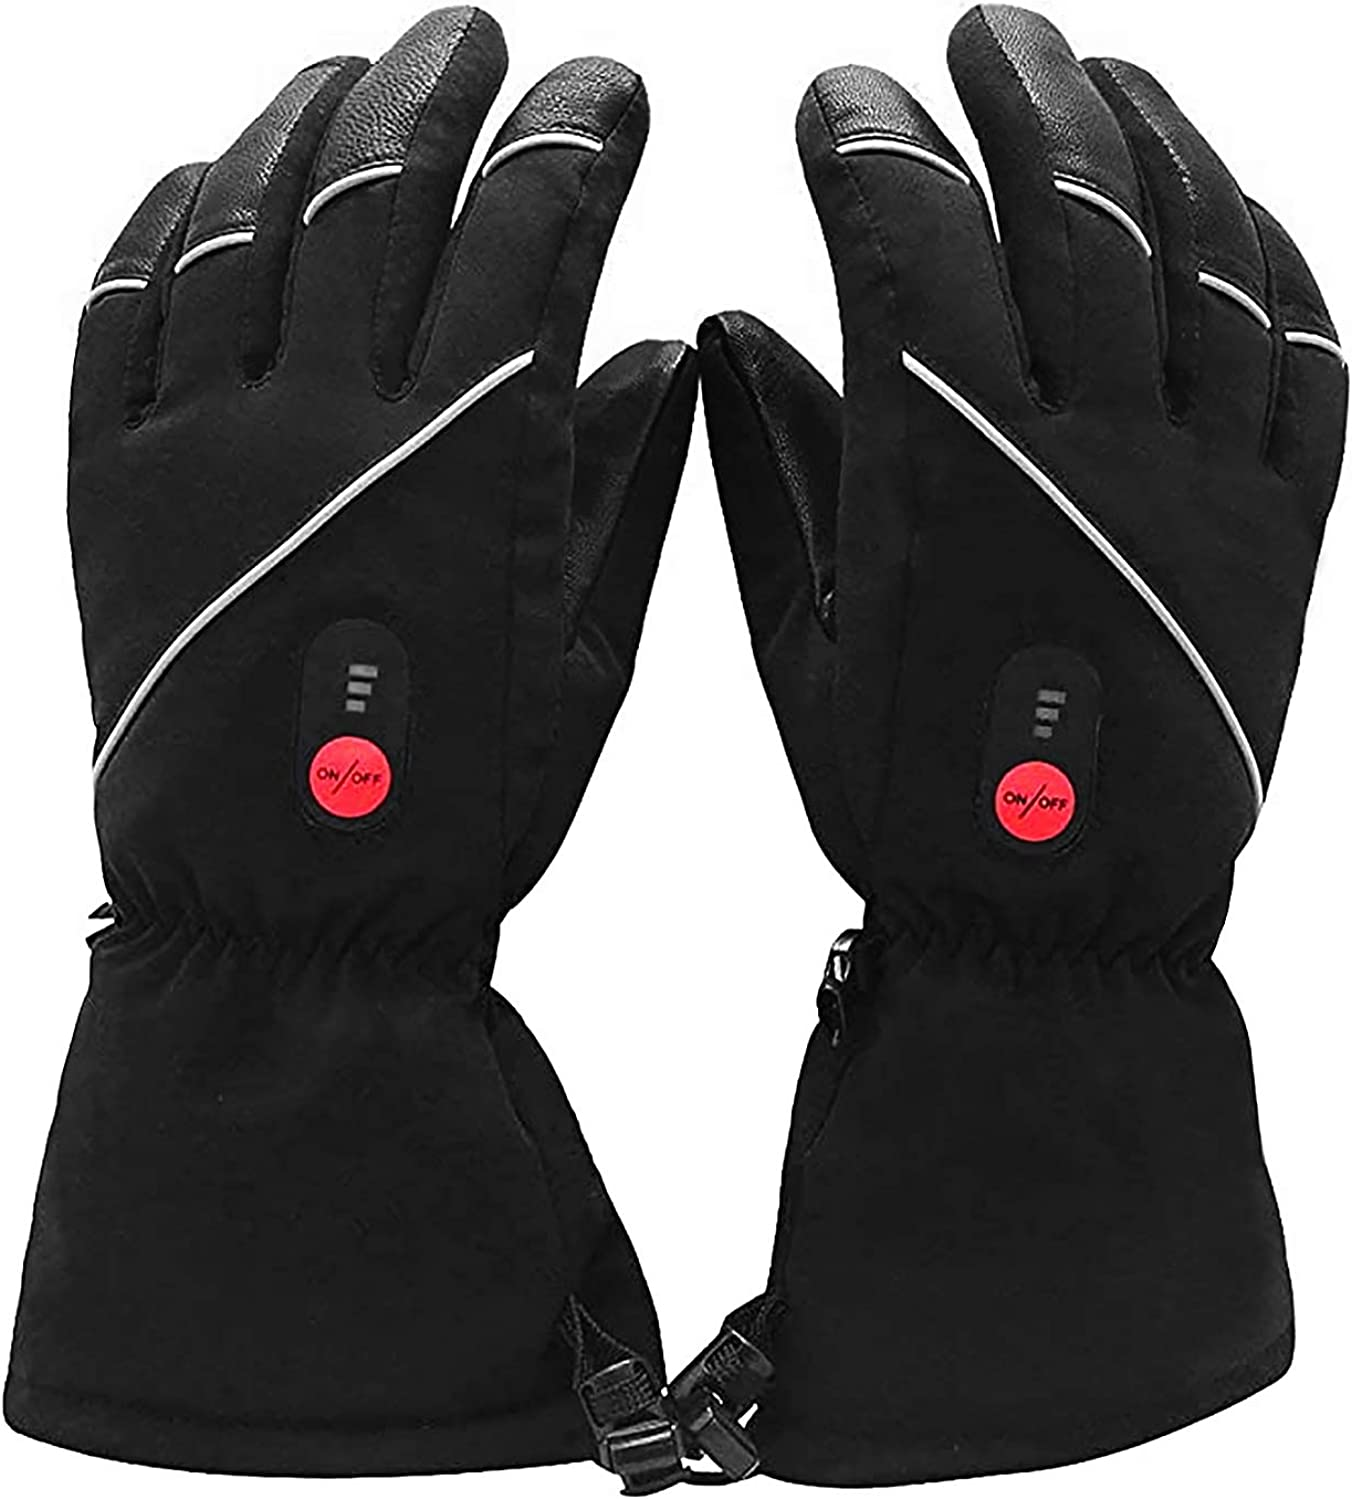 Savior Heated Gloves for Men Women, Electric Heated Gloves,Heated Skiing Gloves and Snowboarding Gloves